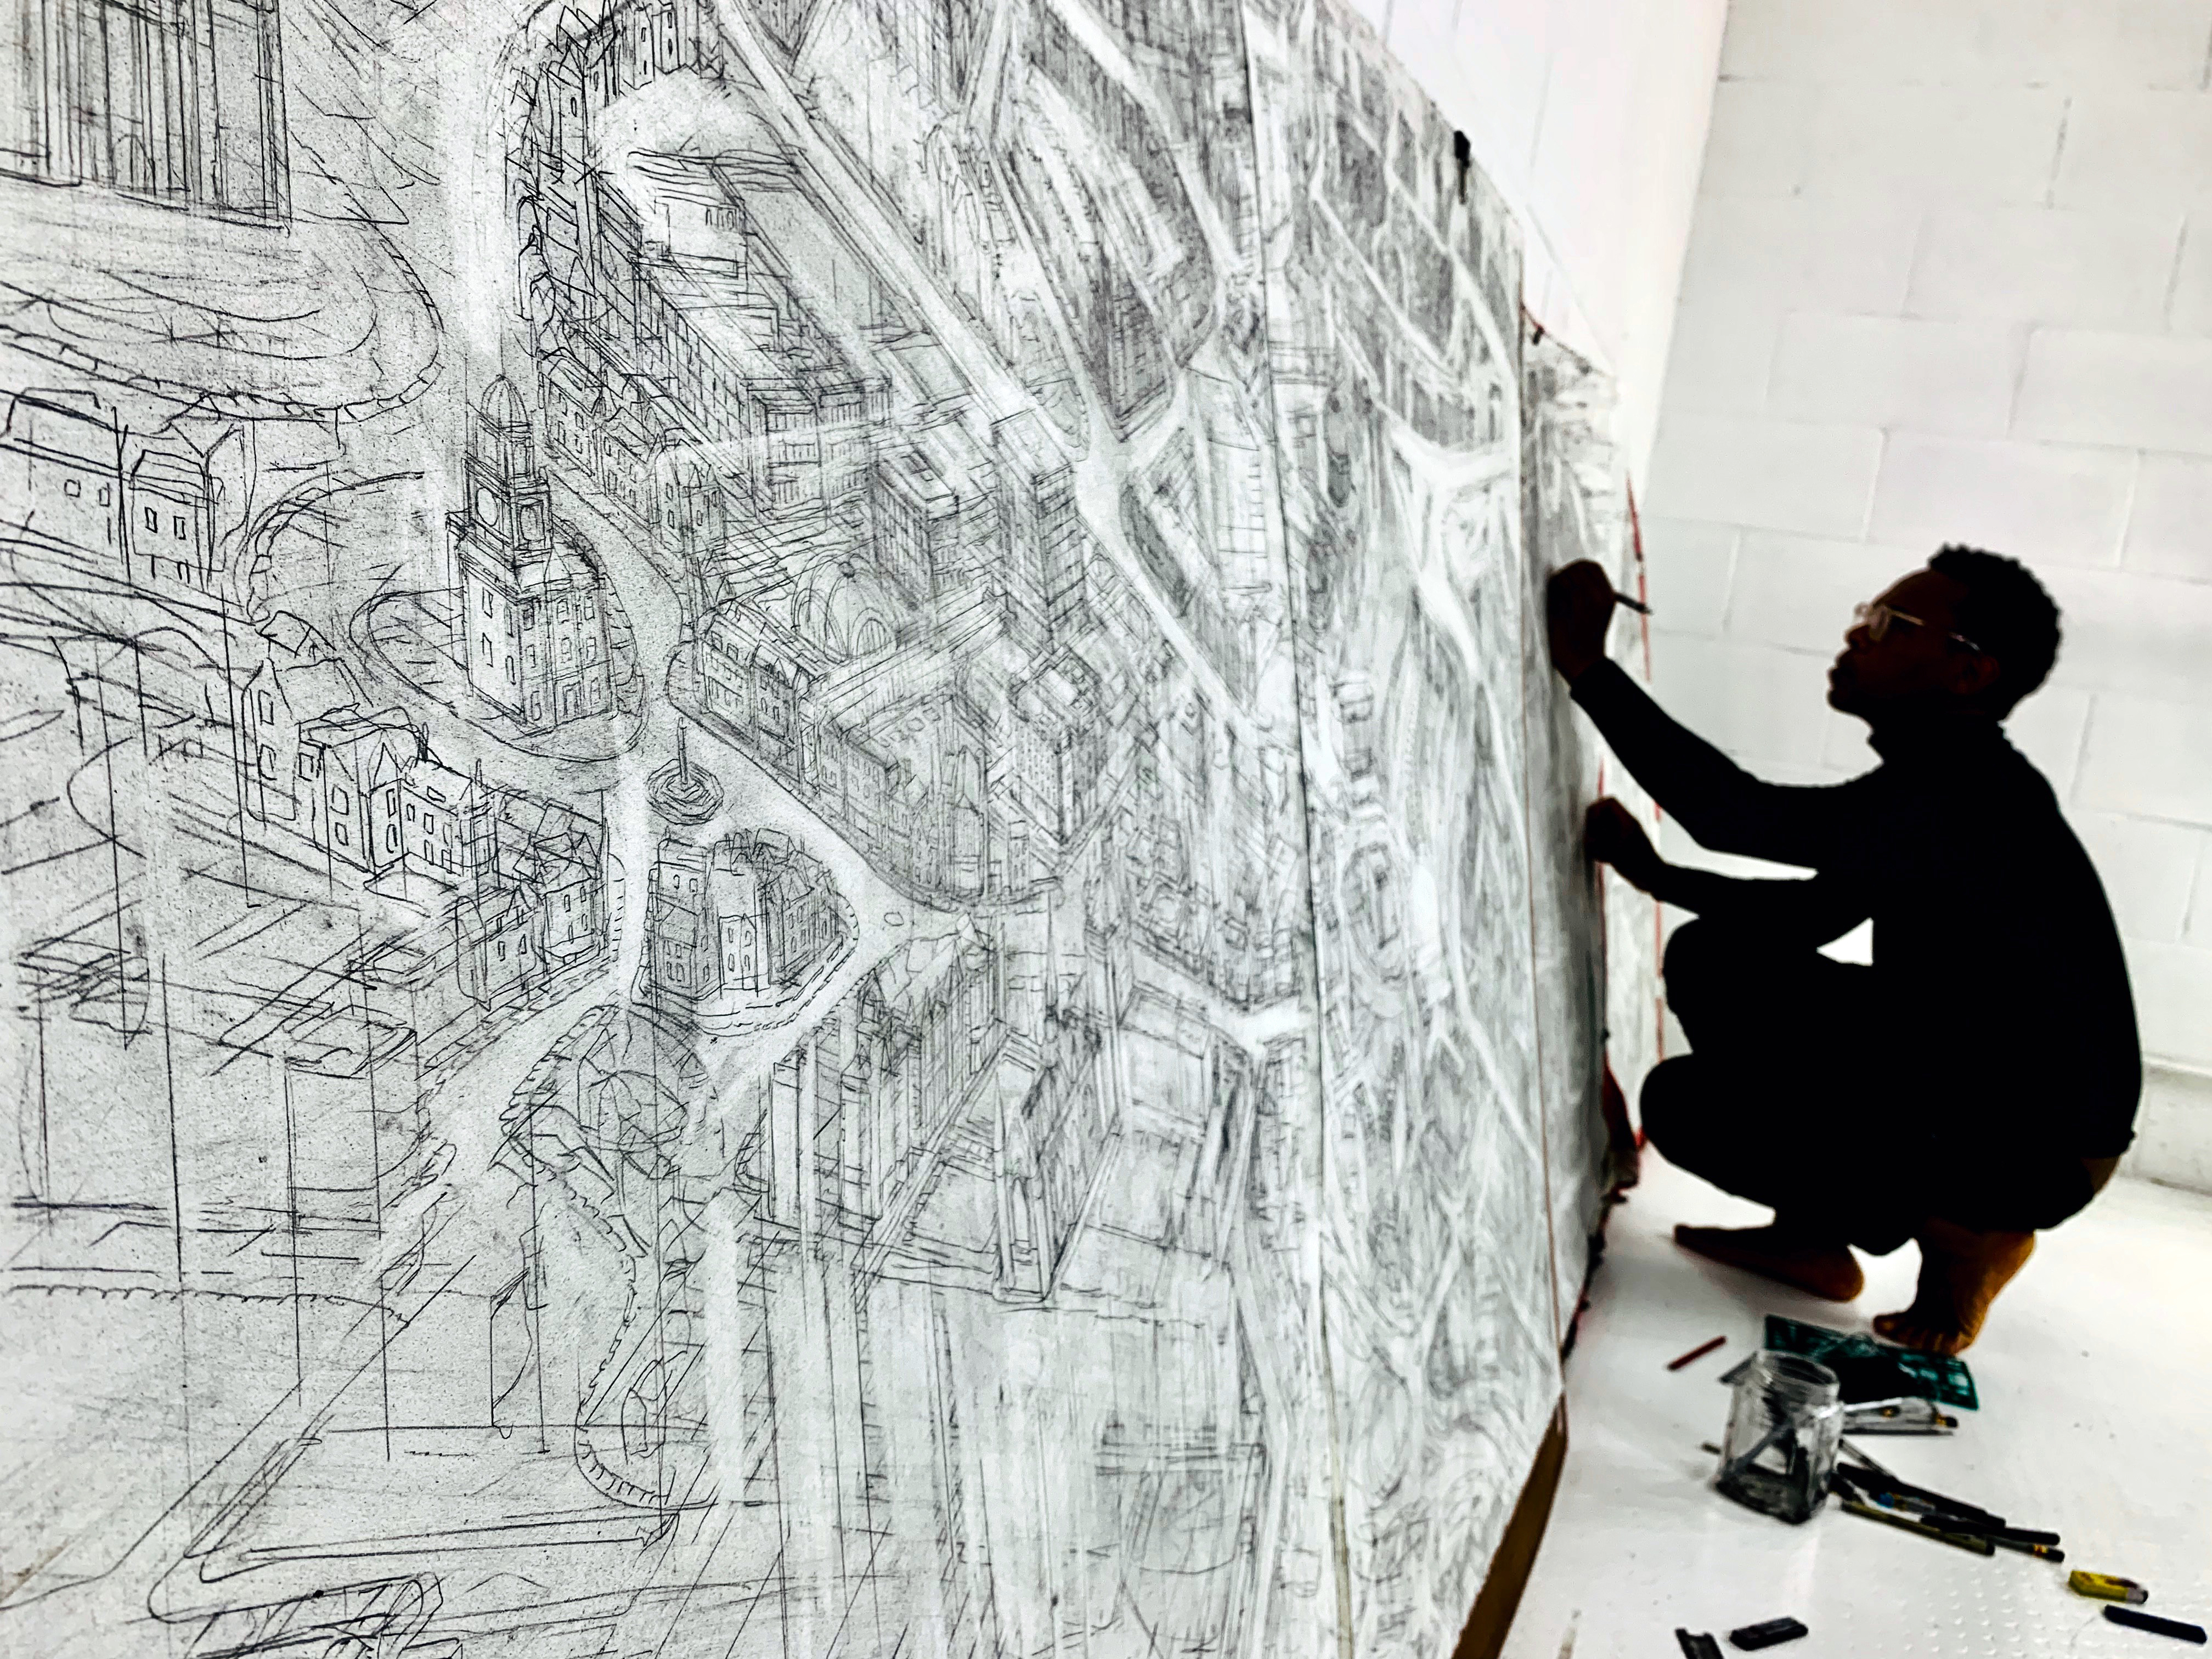 Carl Lavia and Lorna Le Bredonchel are in the midst of producing a large-scale ink portrait of Aberdeen as part of their 'Sketchnthecity' initiative.